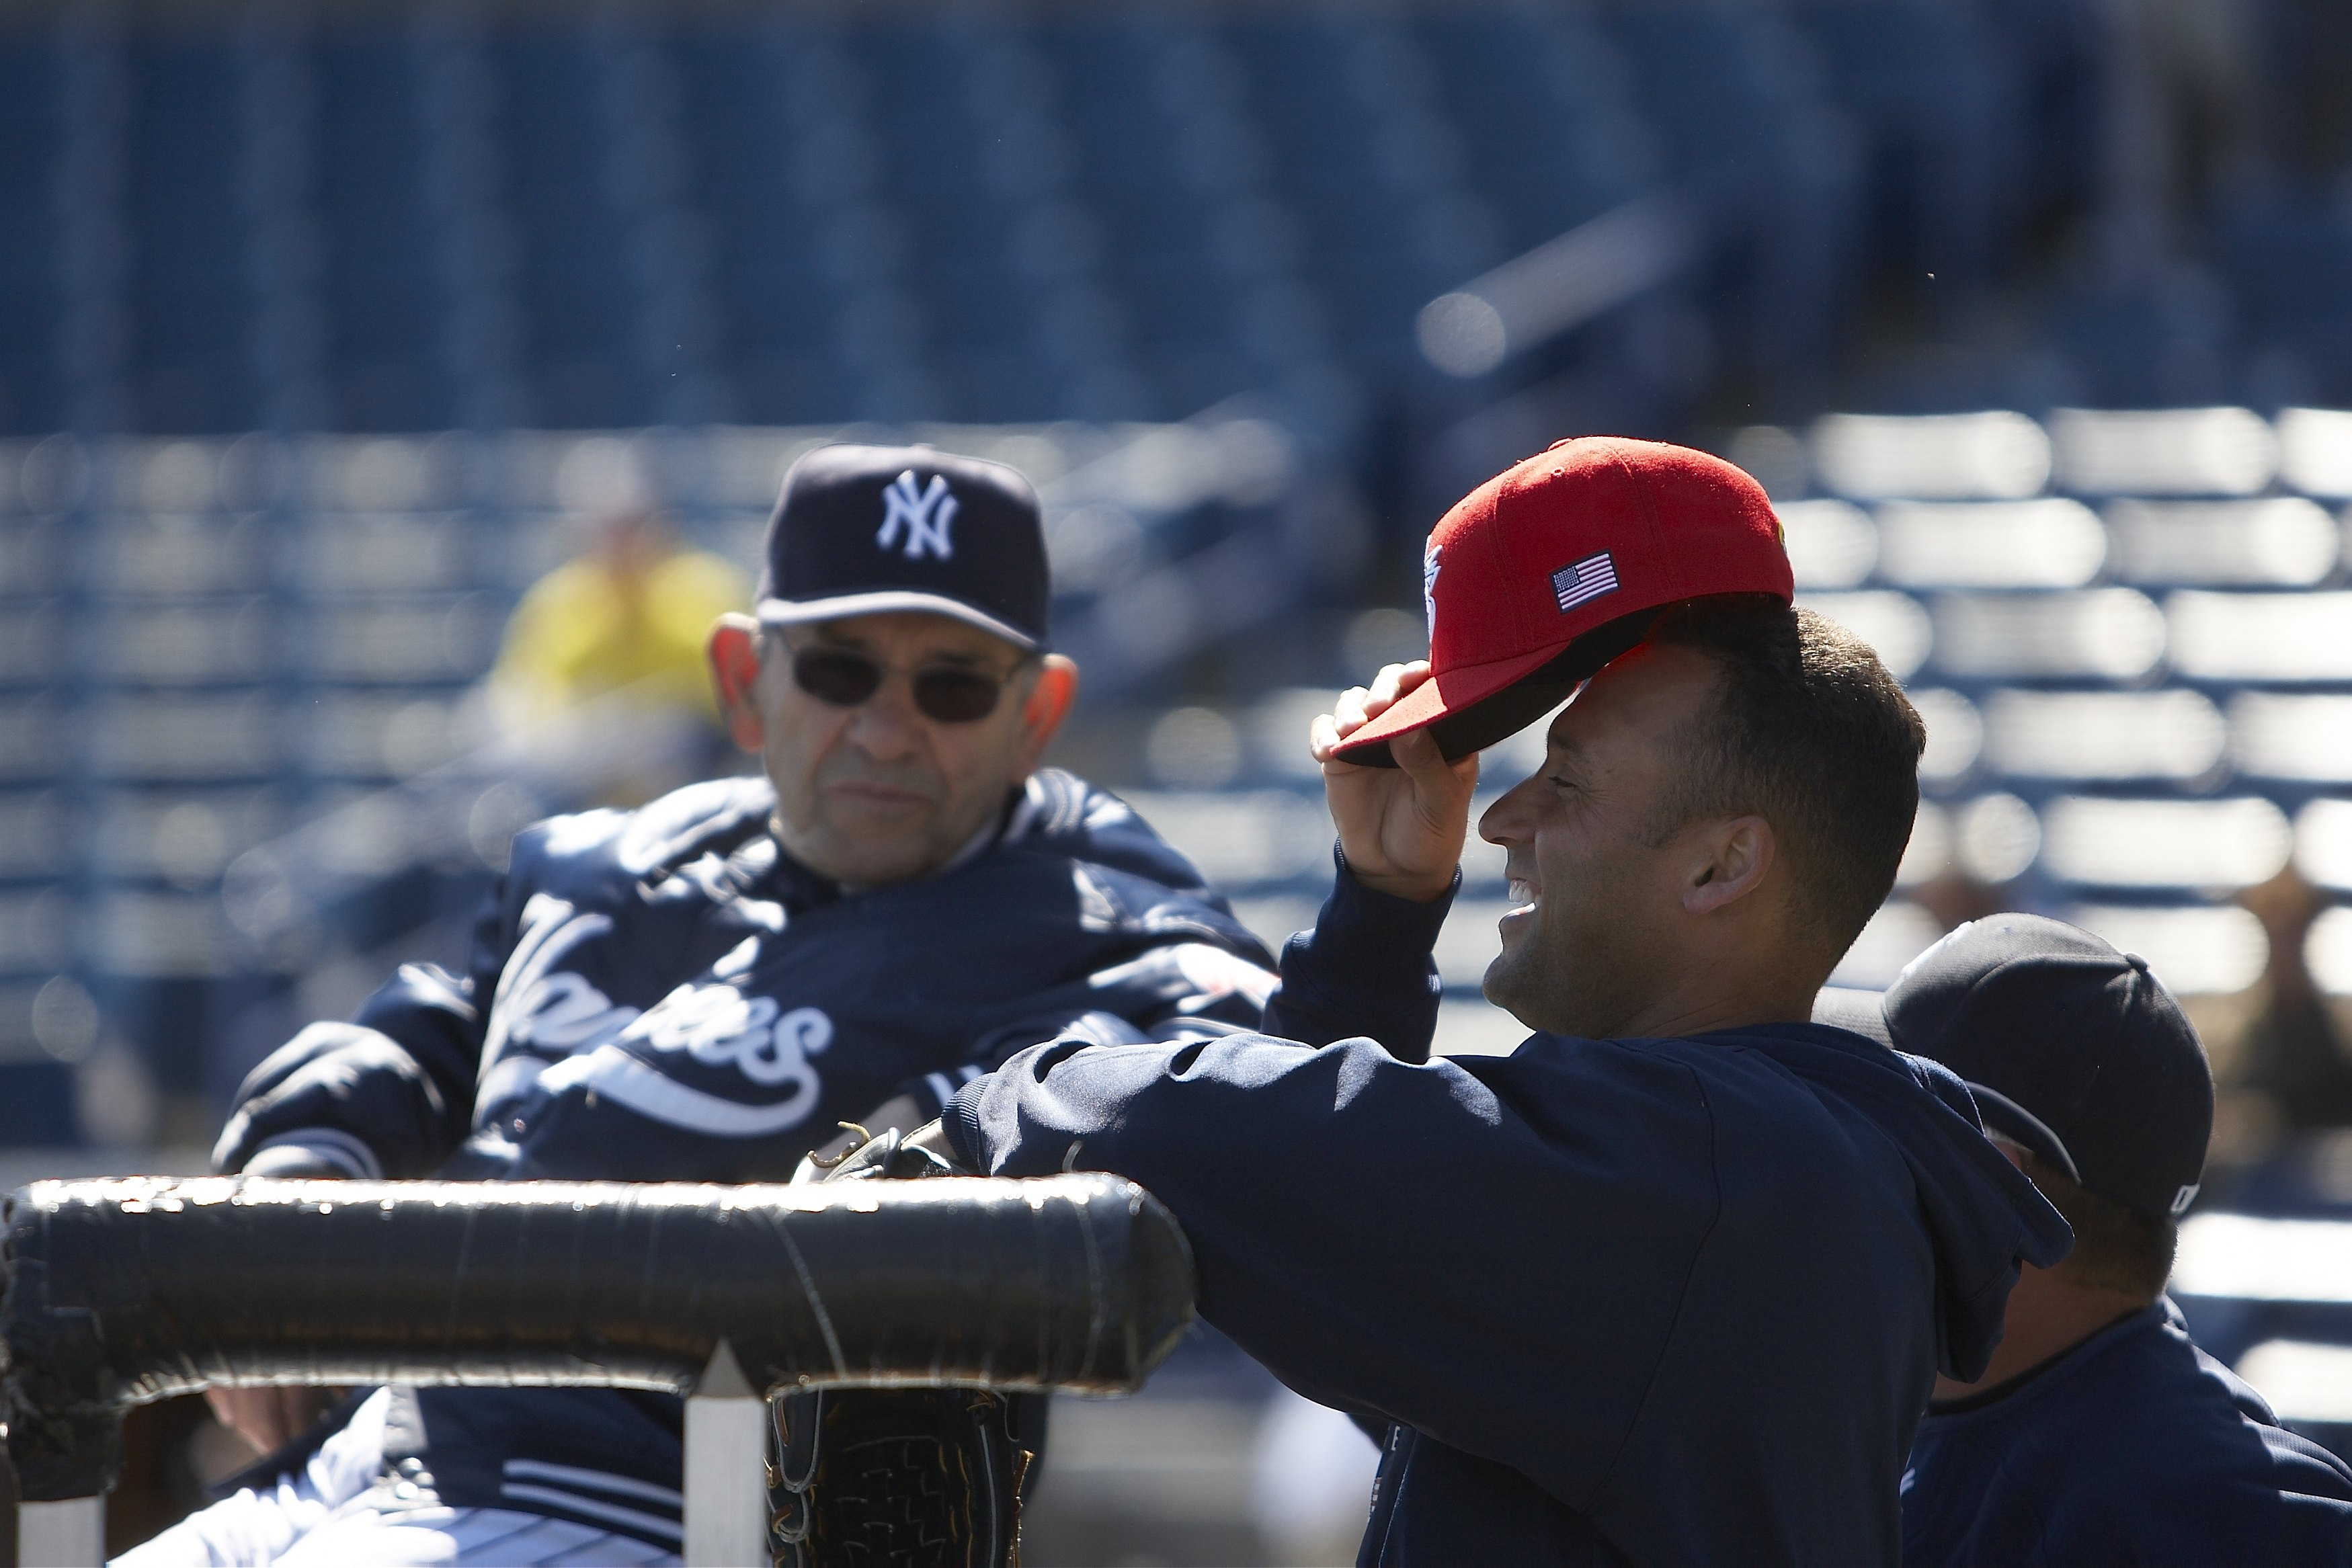 Baseball: Team USA Derek Jeter (2) with New York Yankees coach Yogi Berra before exhibition game vs New York Yankees. Tampa, FL 3/3/2009 CREDIT: Chuck Solomon (Photo by Chuck Solomon /Sports Illustrated/Getty Images) (Set Number: X81922 TK1 R4 F83 )